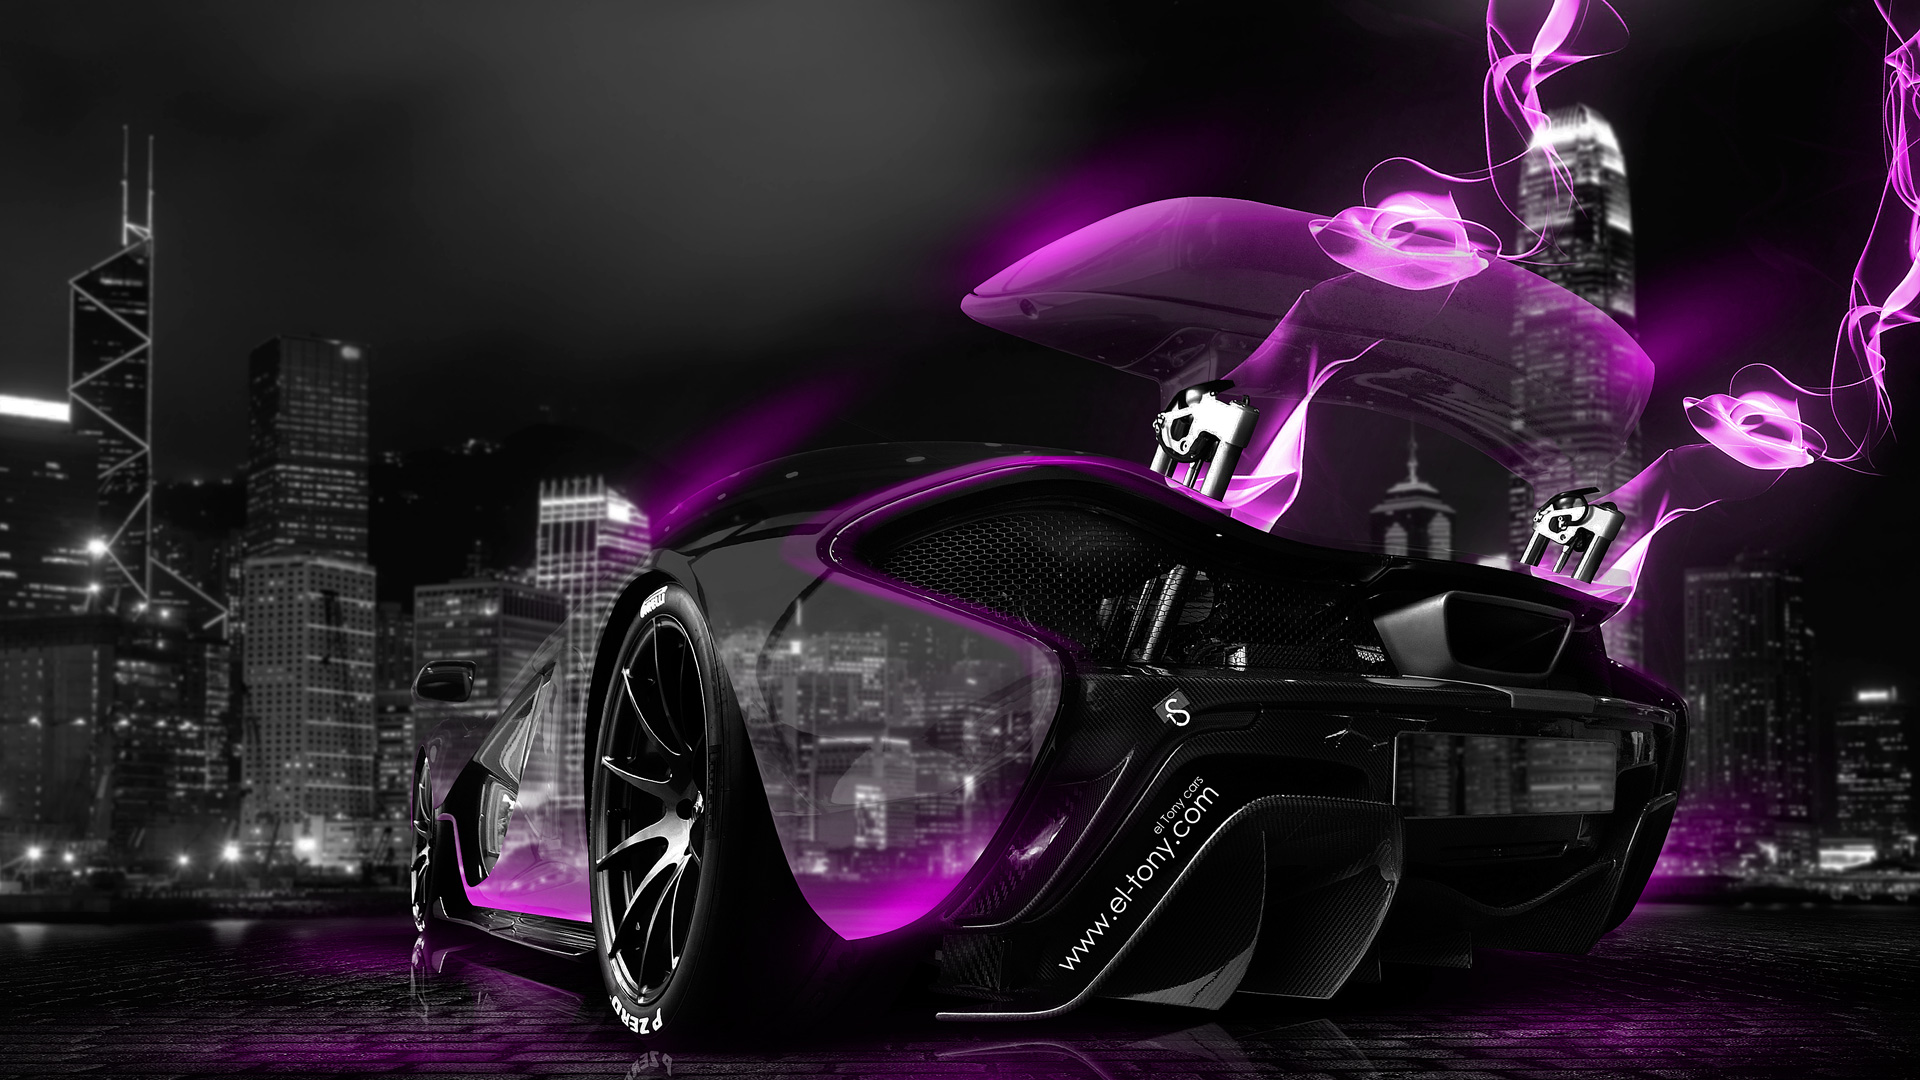 Hd Jdm Car Wallpapers Mclaren P1 Neon Energy Crystal City Car 2014 El Tony